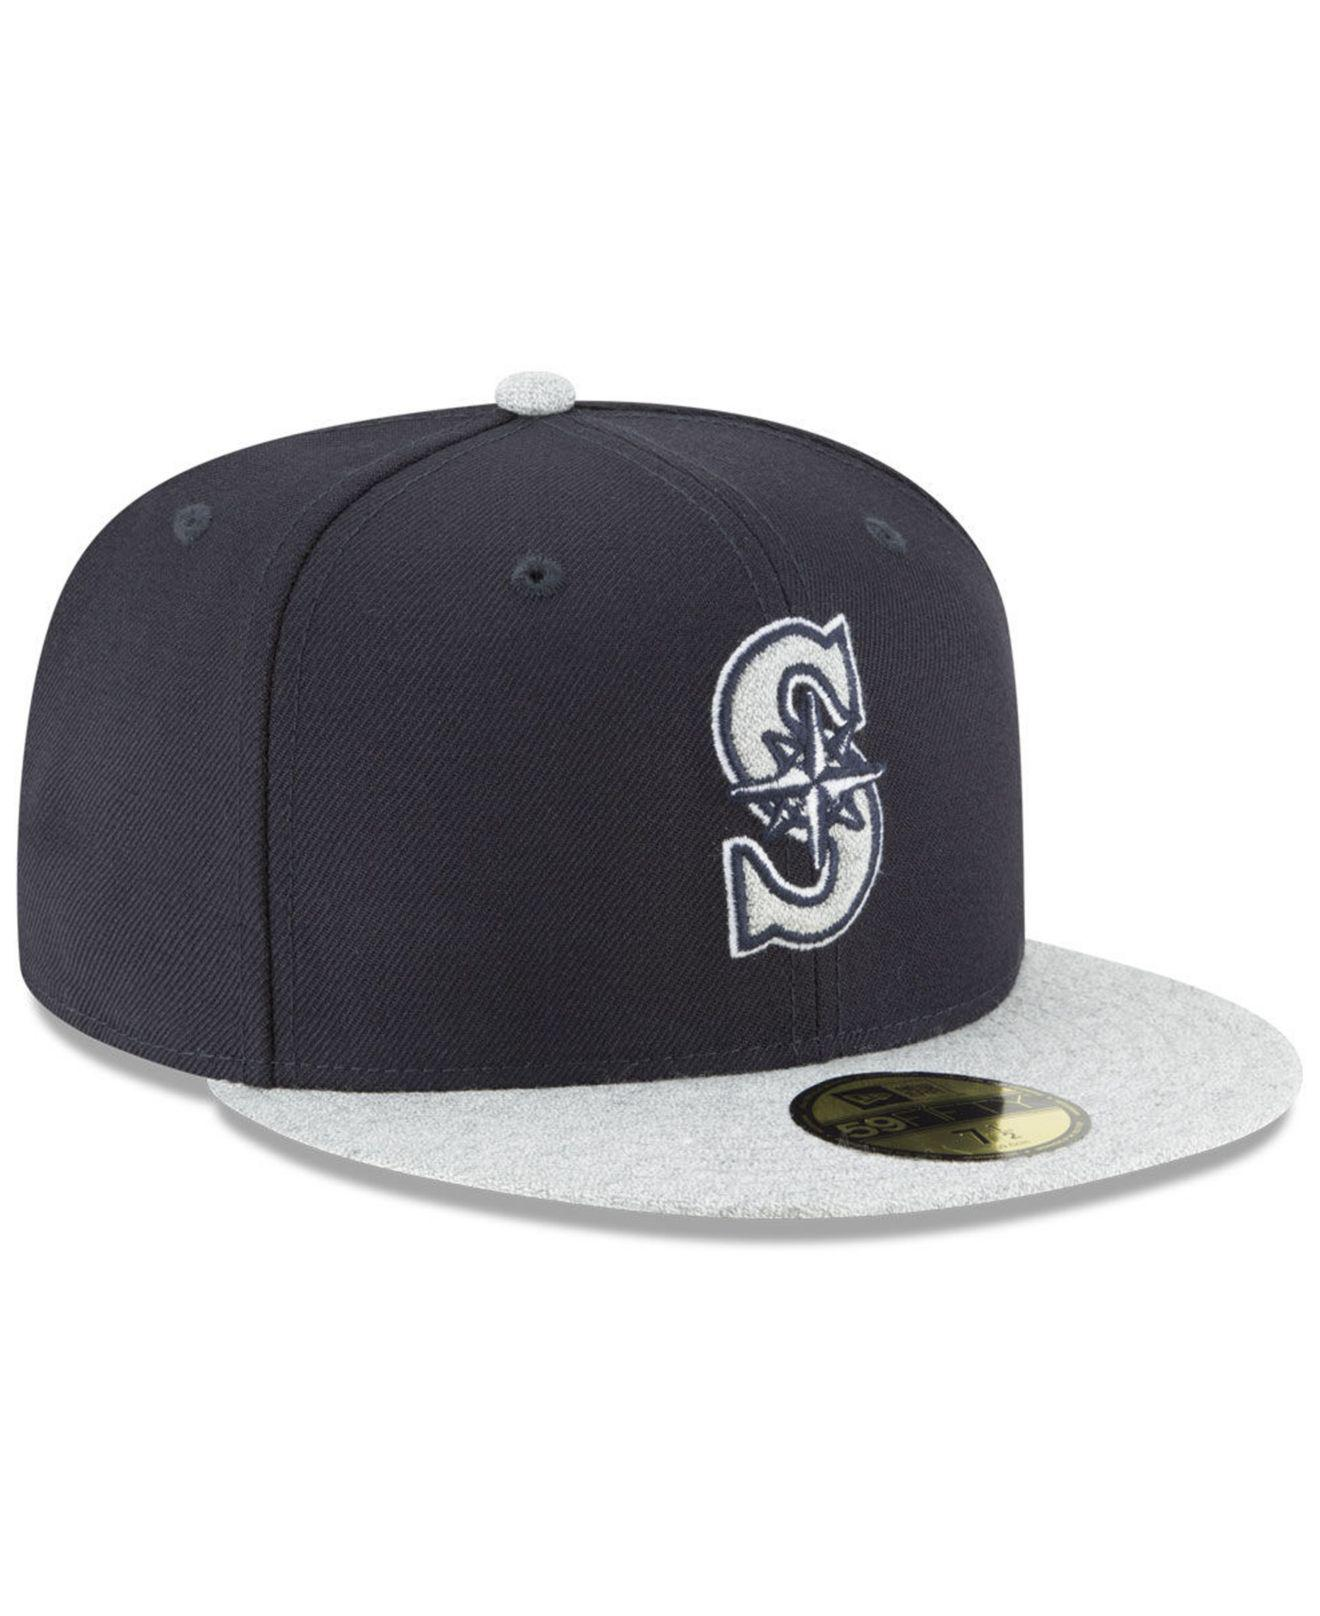 online retailer 66785 03d5c ... canada seattle mariners pop color 59fifty fitted cap for men lyst. view  fullscreen 7577a c6ef3